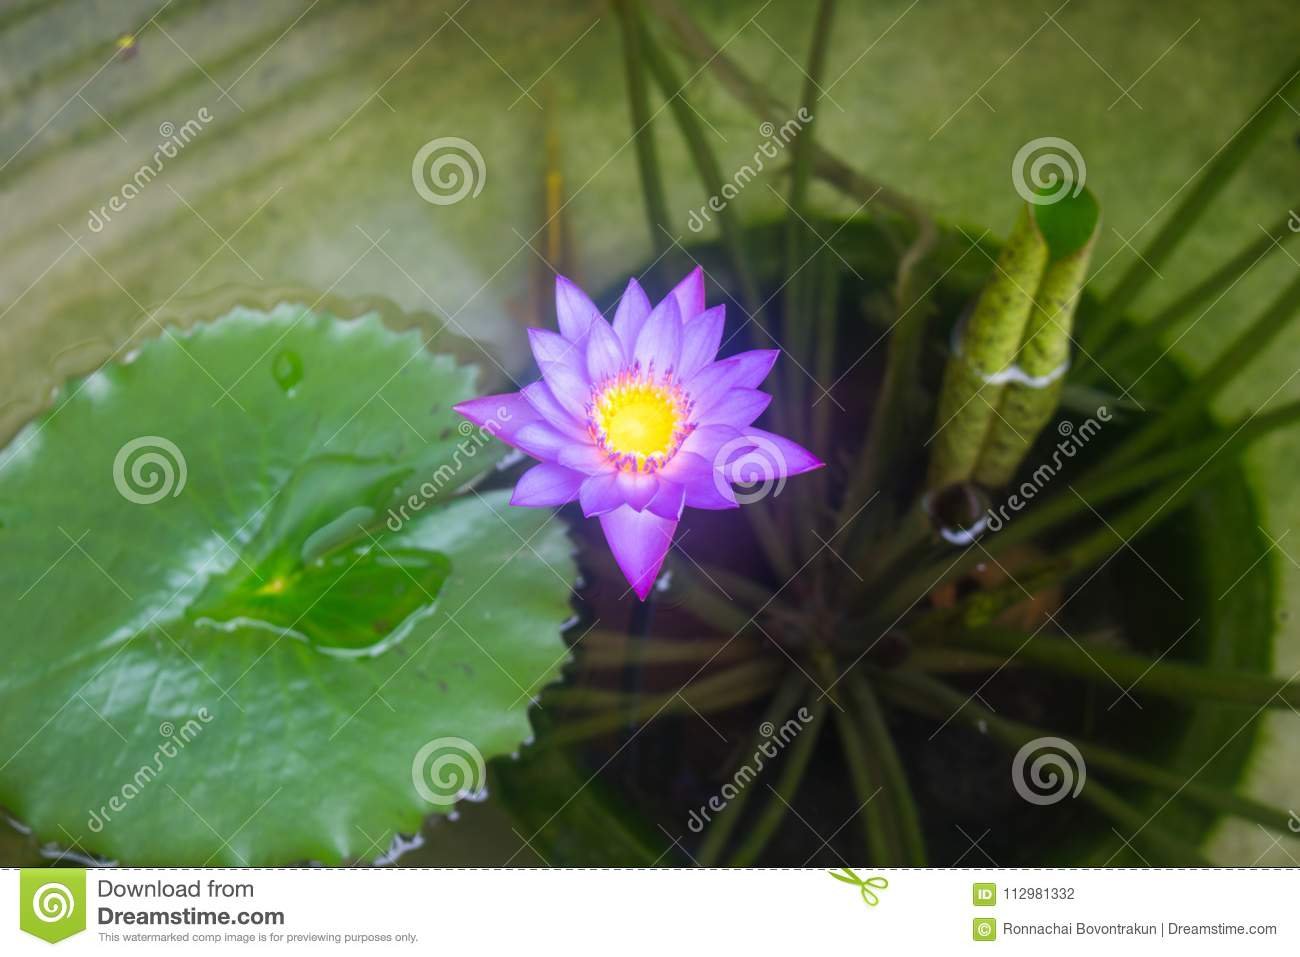 Blooming purple lotus flower